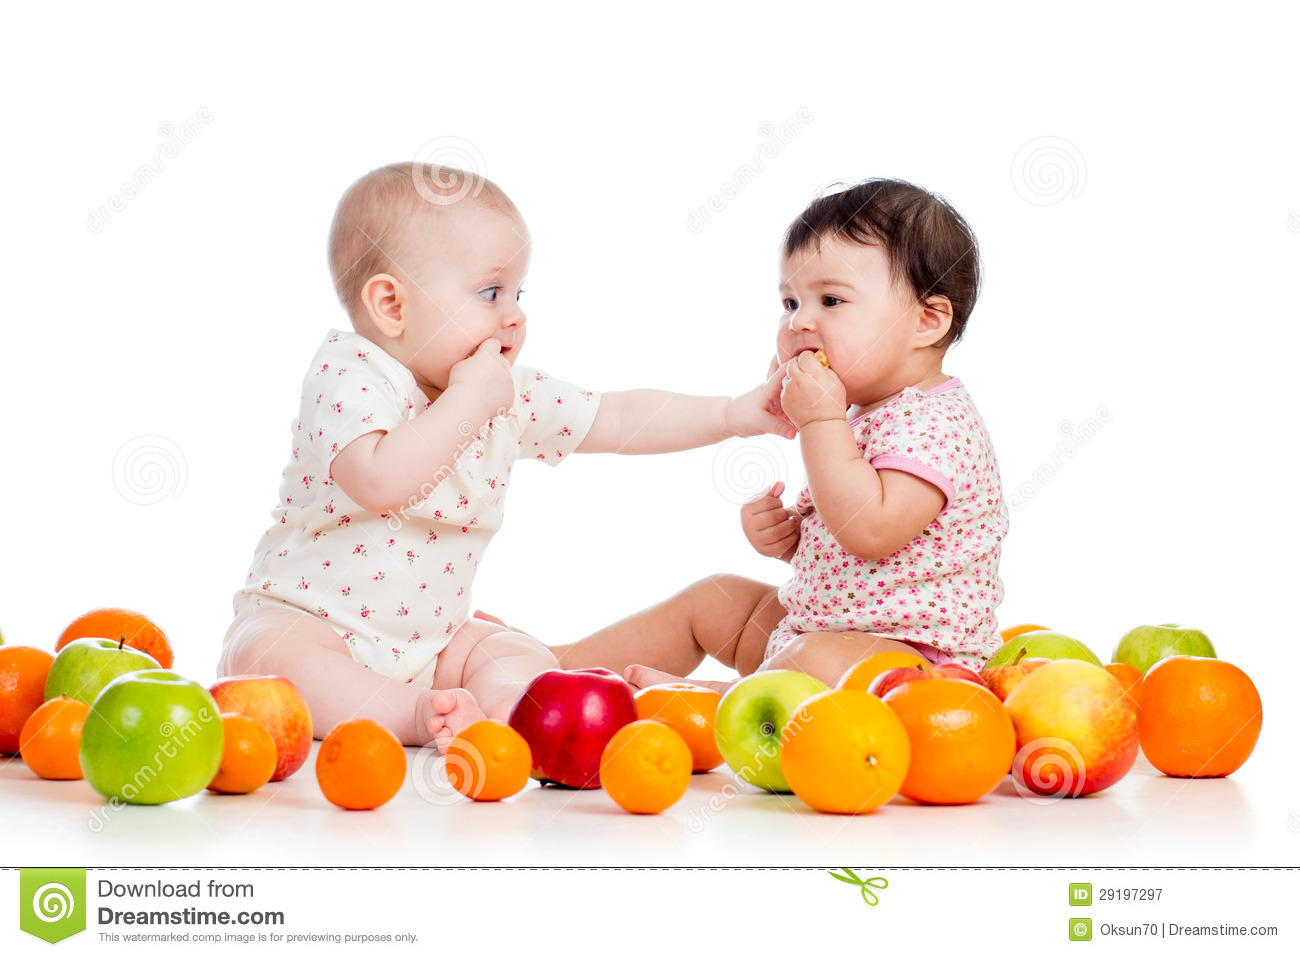 Babies girls eating healthy food fruits on white